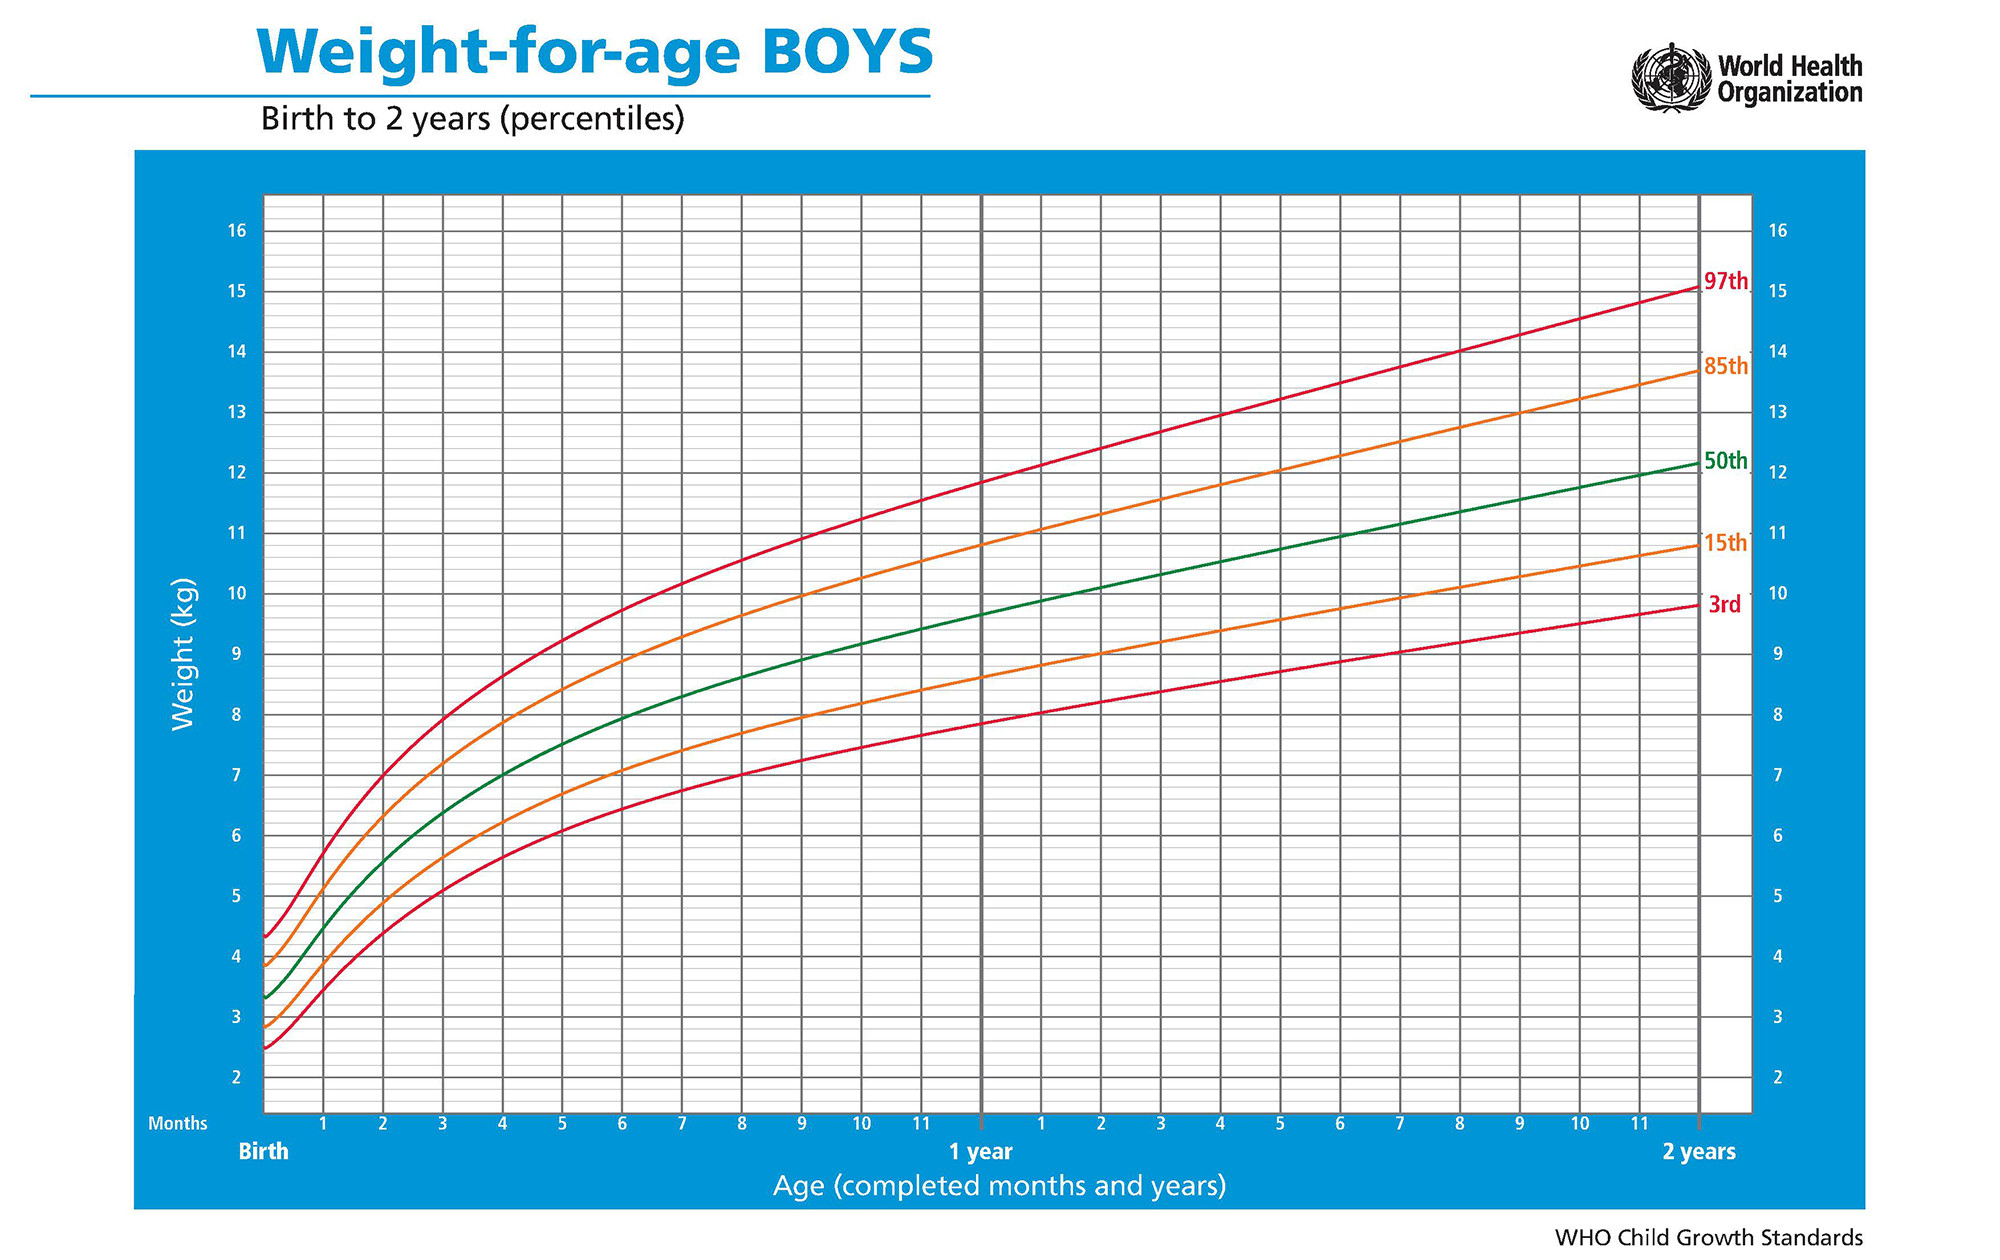 WHO Growth Chart - Weight-for-age Boys